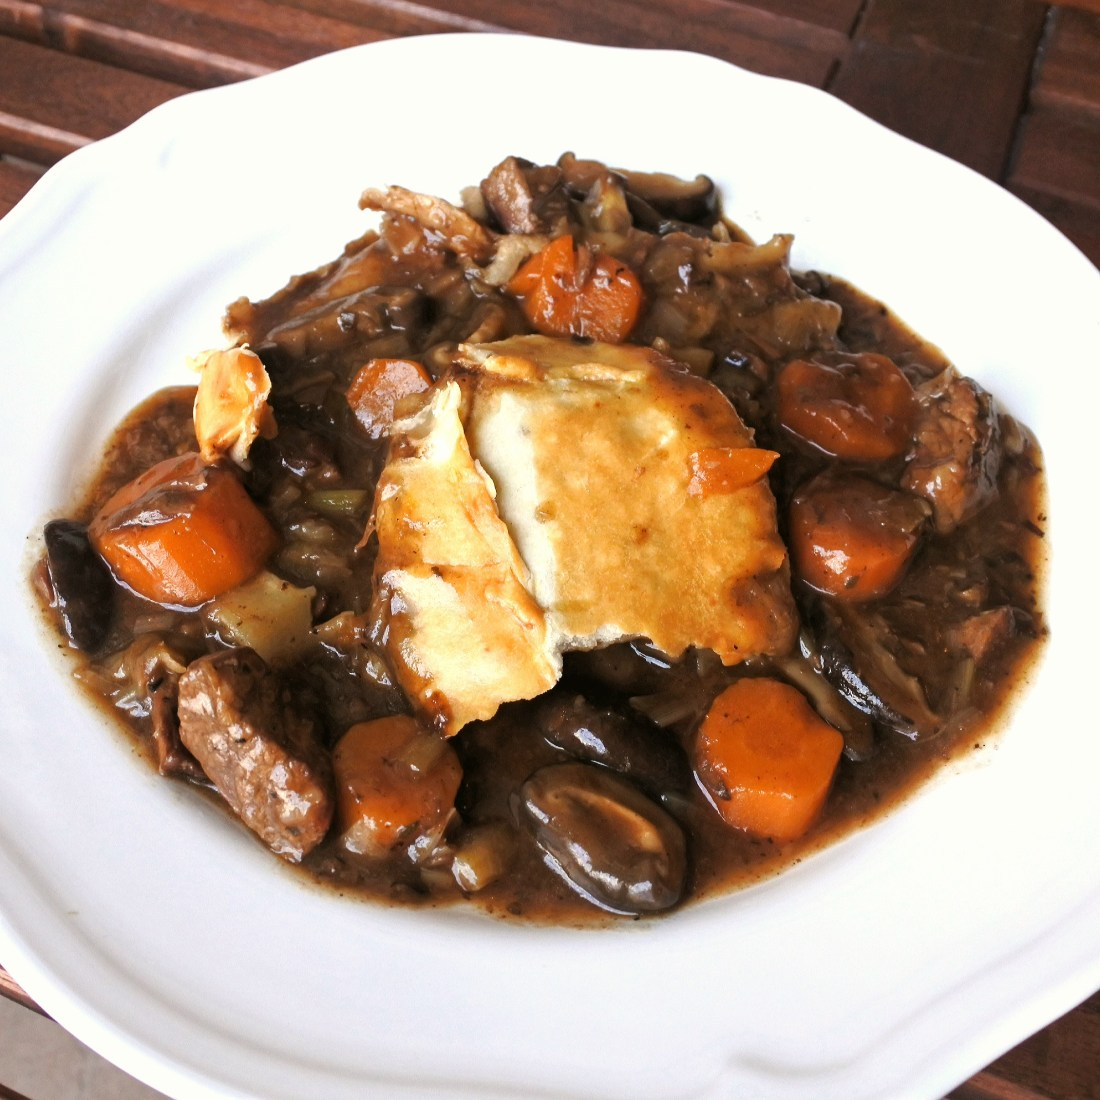 steak and ale pie in bowl